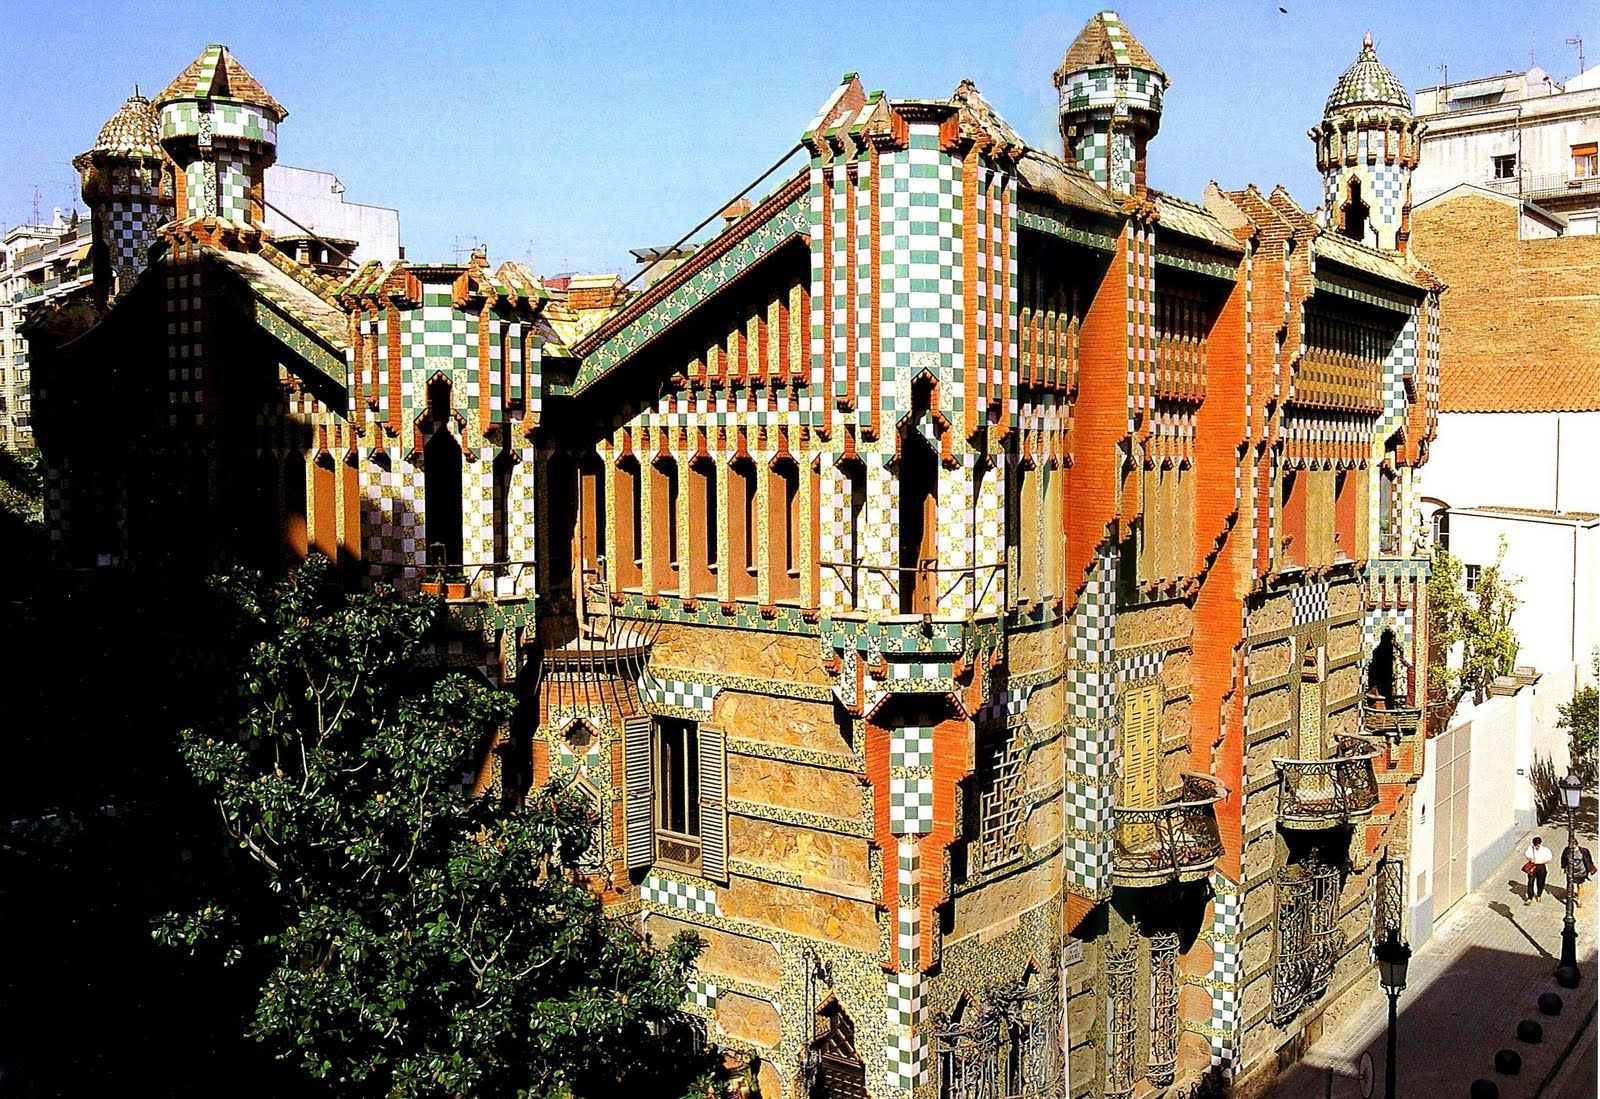 Casa vicens is a family residence in barcelona designed by antoni gaud and built for - Casa vives gaudi ...